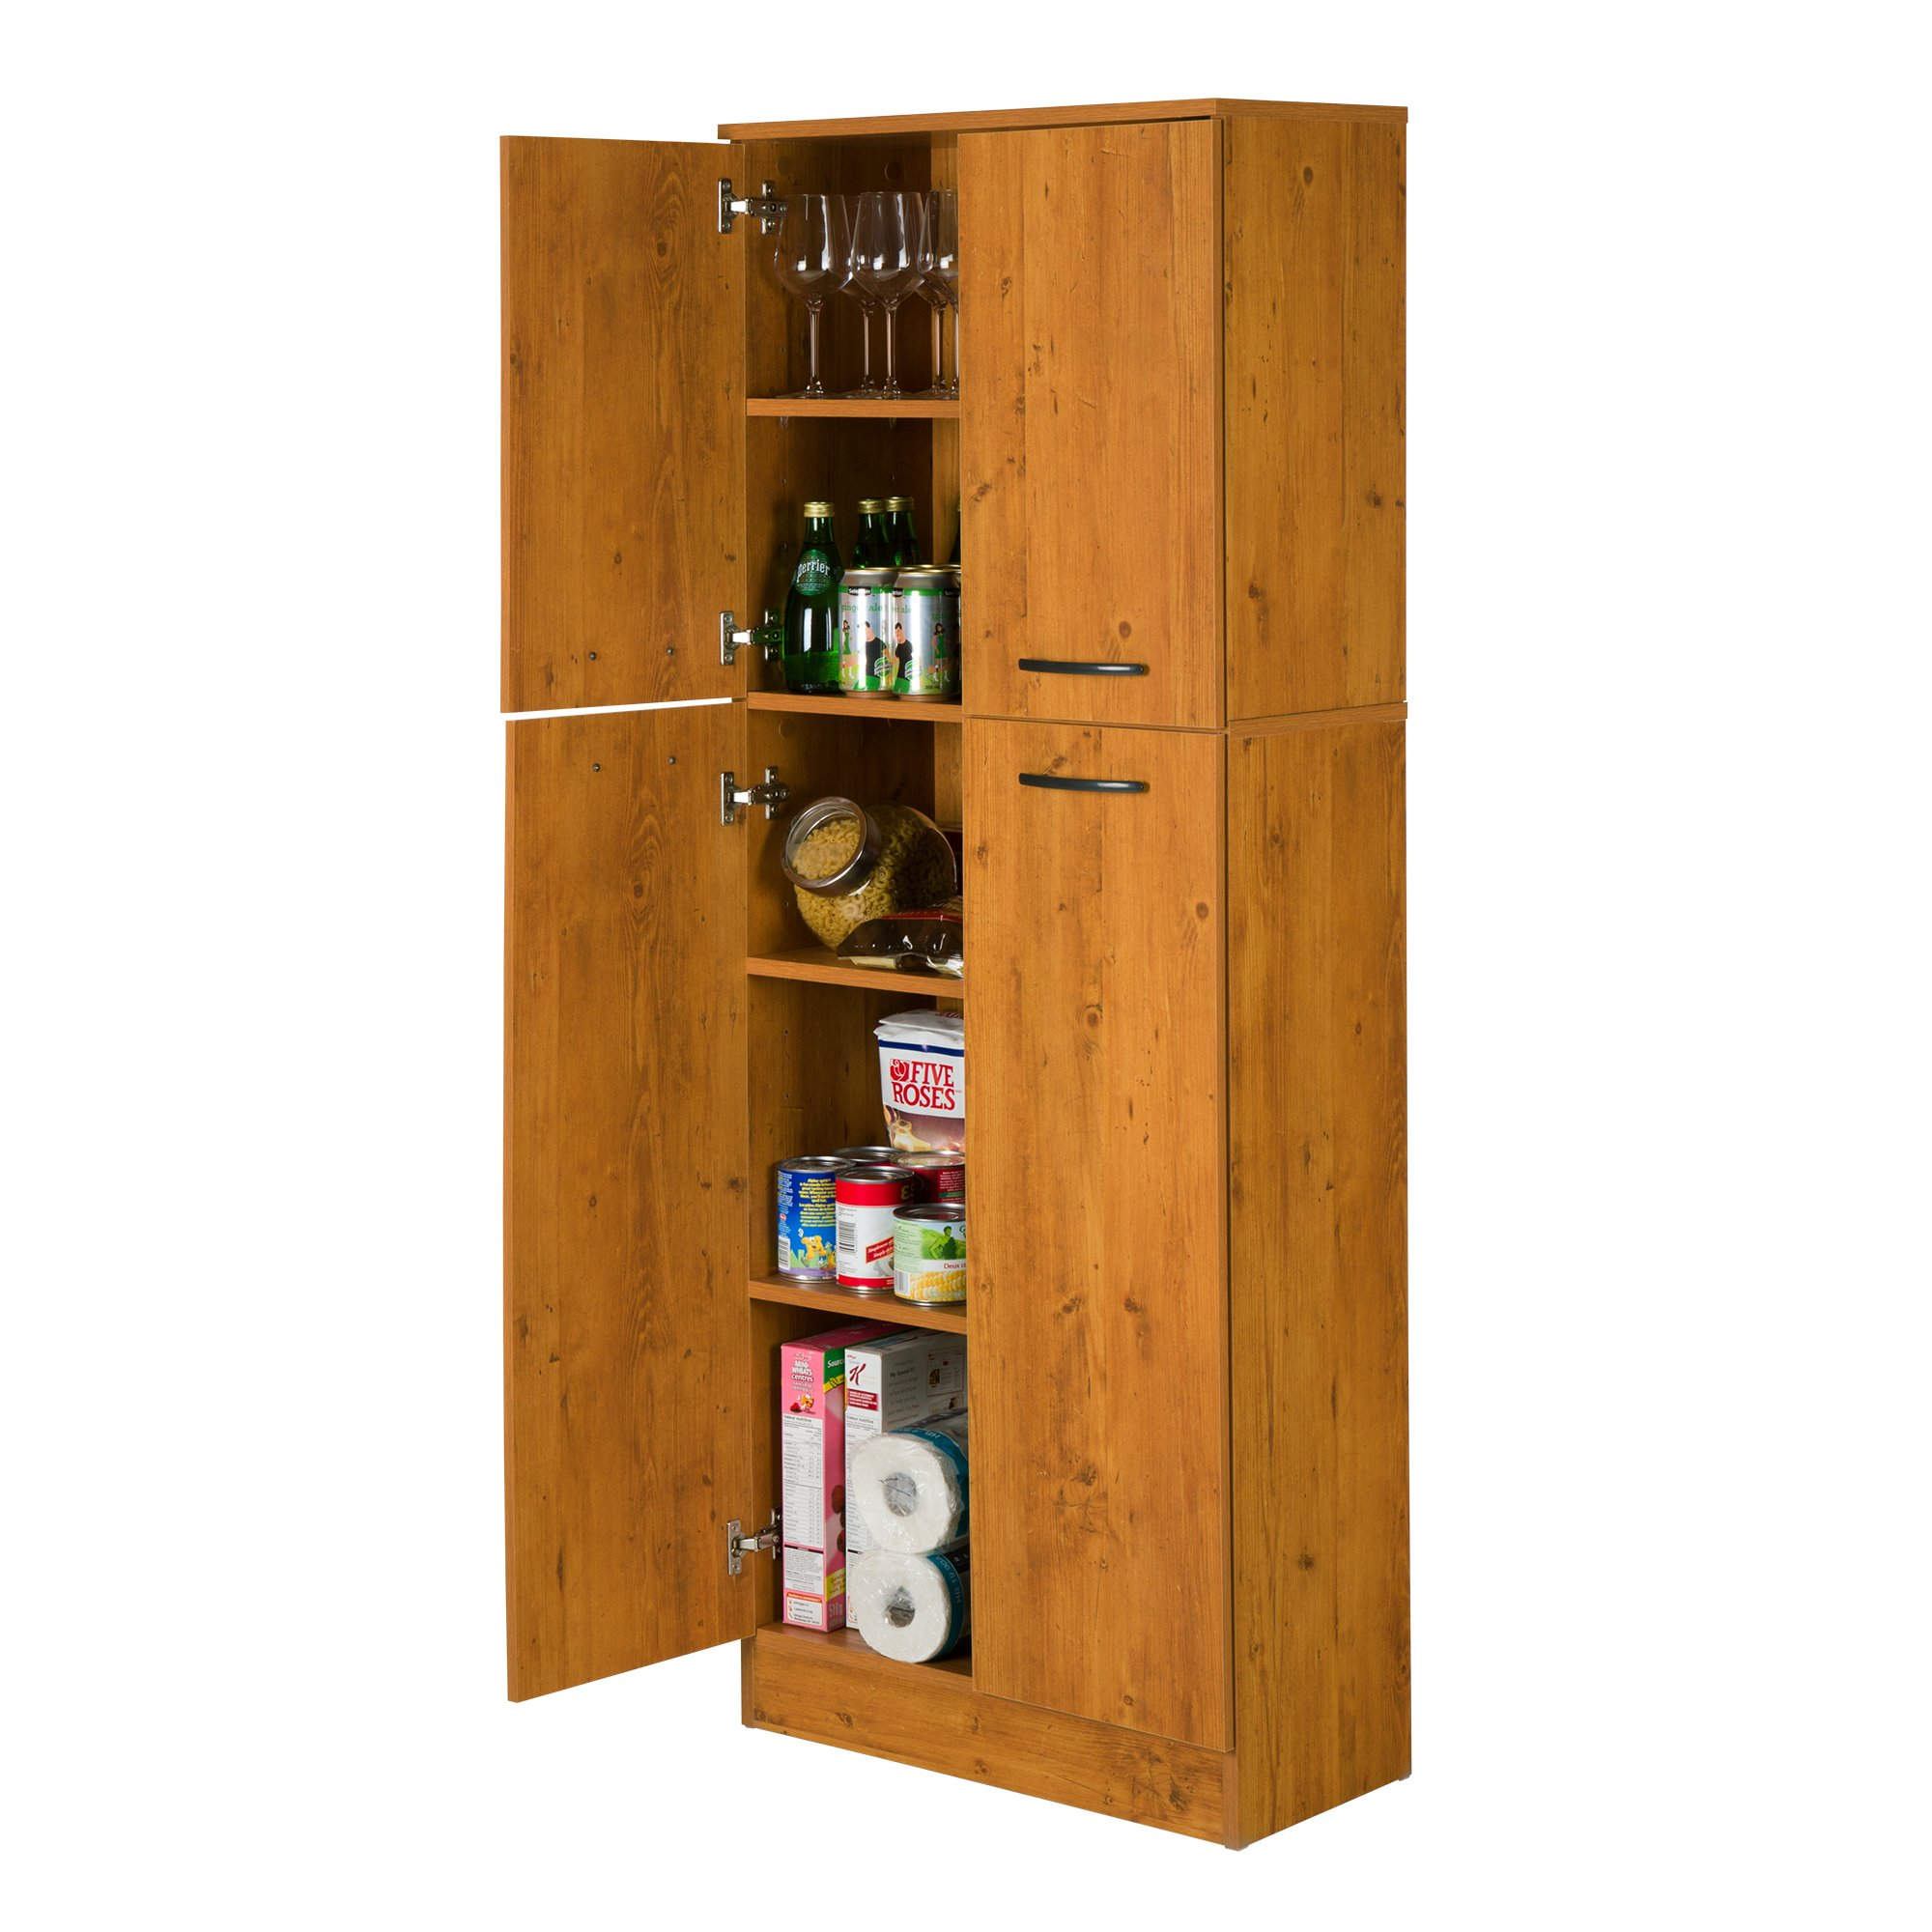 South Shore Axess 4-Shelf Pantry Storage, Country Pine by South Shore (Image #3)